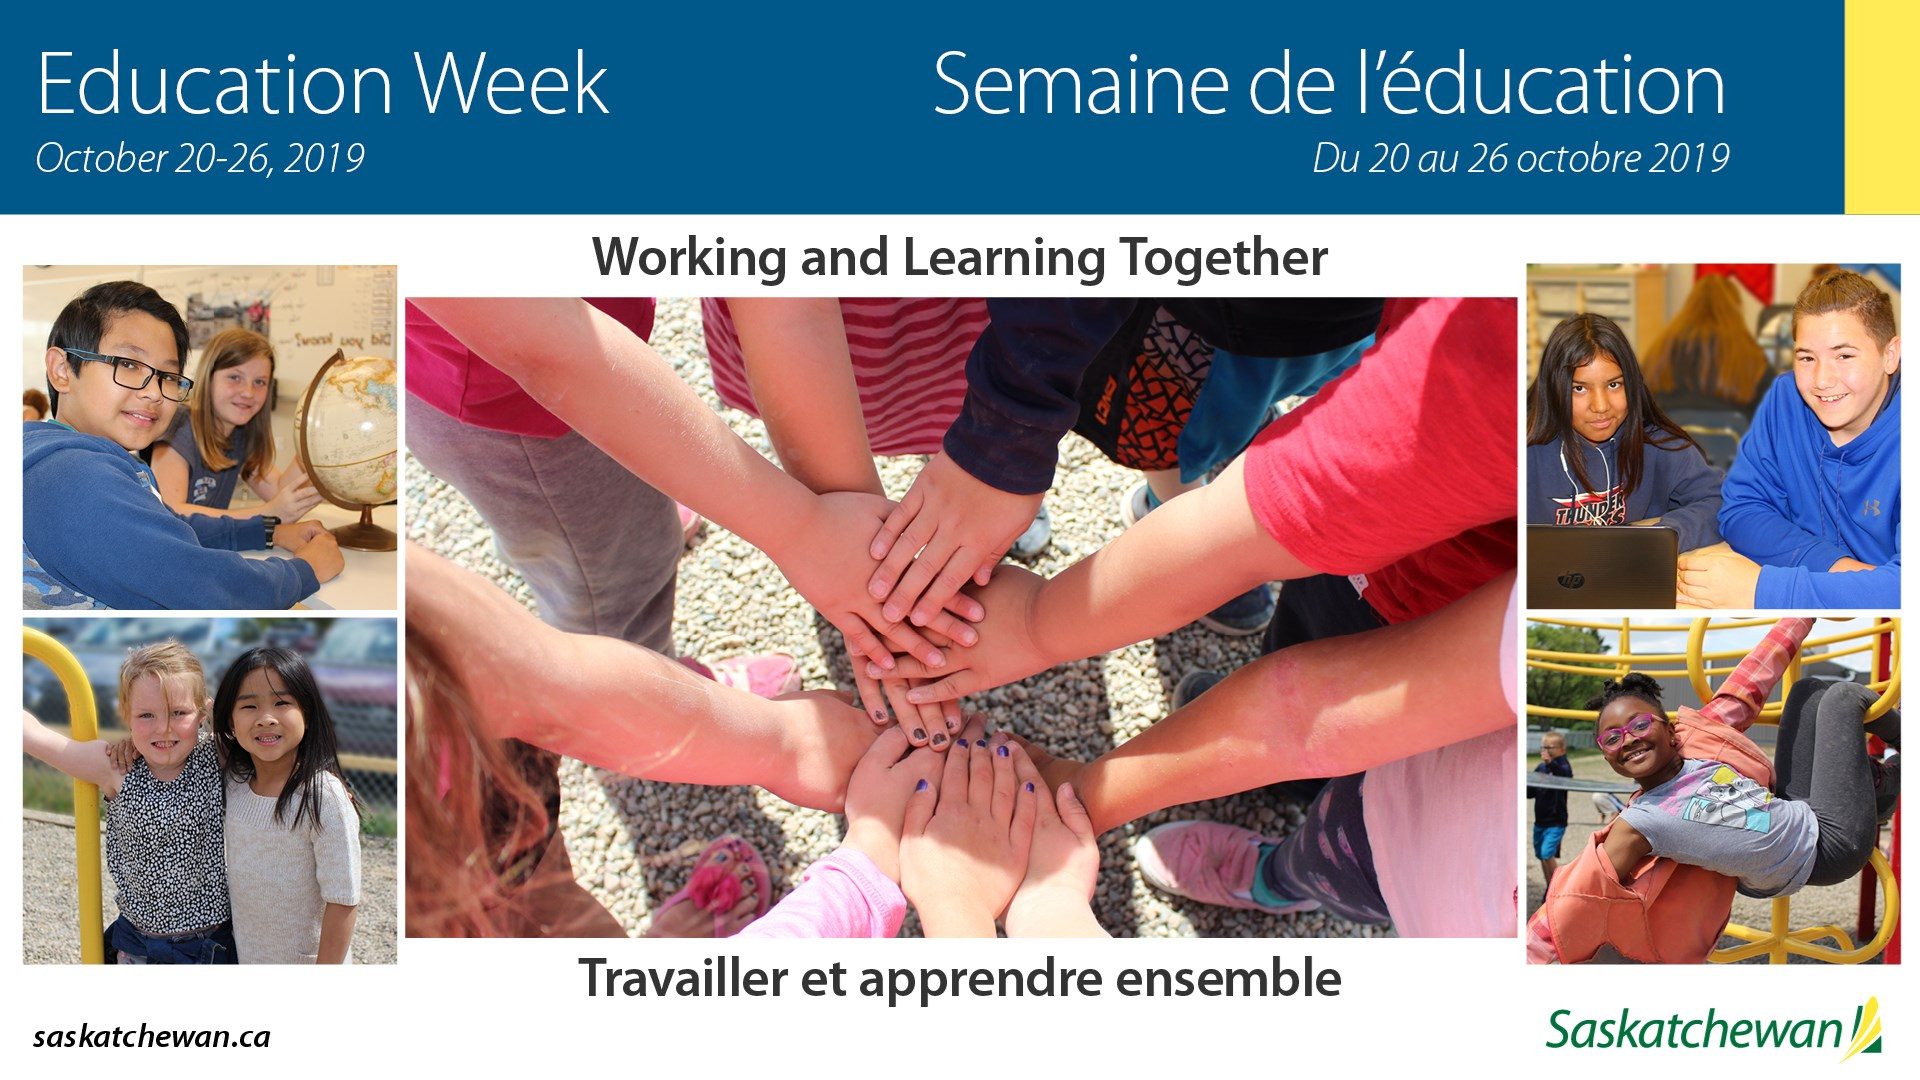 Education Week: Working and Learning Together